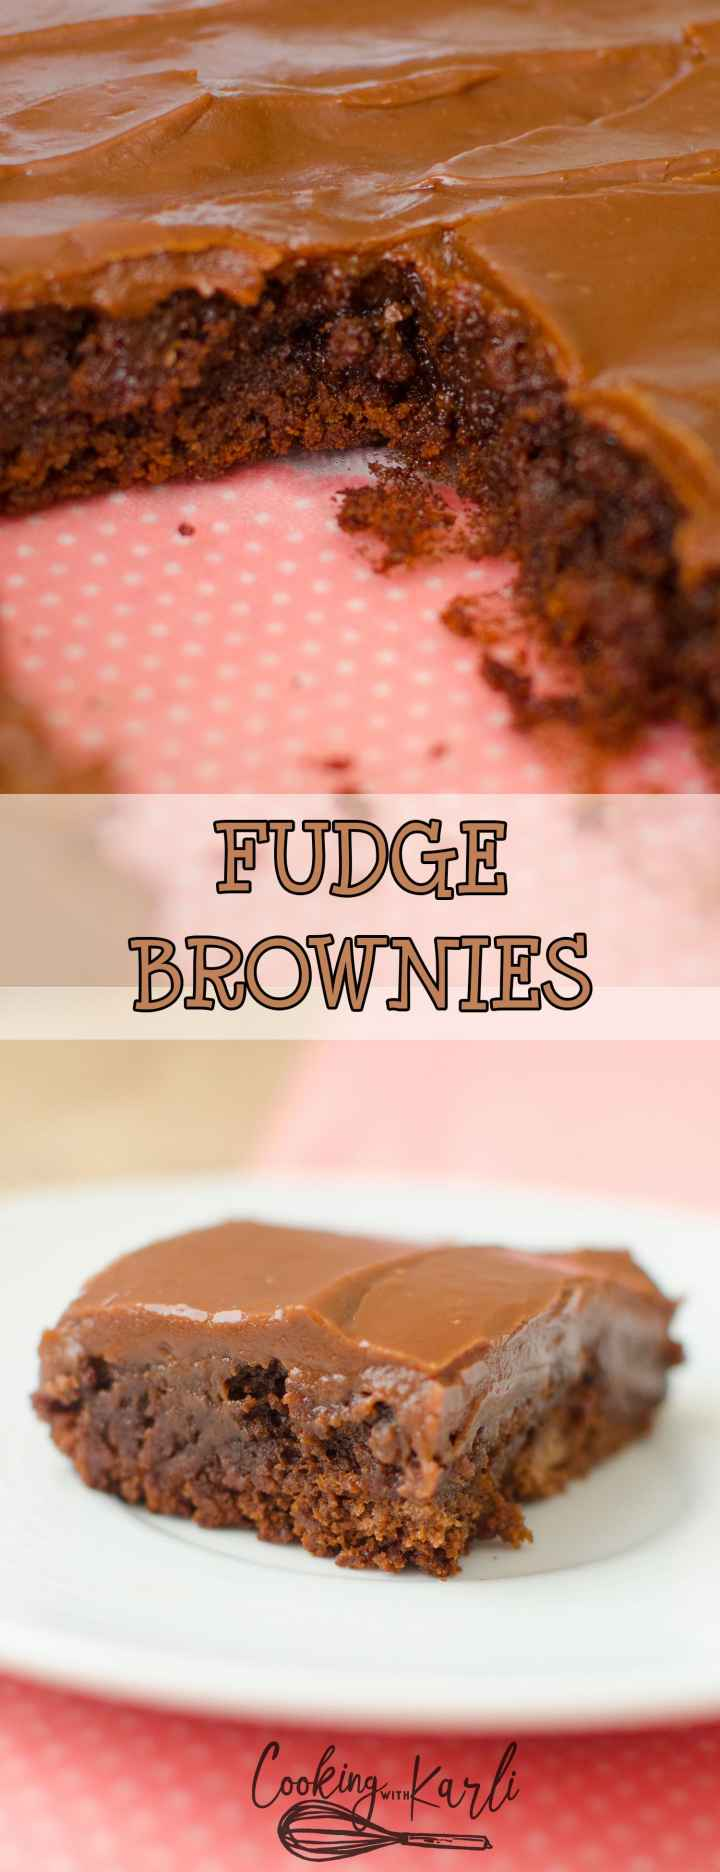 Fudge Brownies are thick, chewy and gooey! The fudge chocolate frosting is poured hot onto warm brownies; the two kind of blend together to make one extremely rich, Fudge Brownie. |Cooking with Karli| #brownie #recipe #fudge #nomixer #chewy #dessert